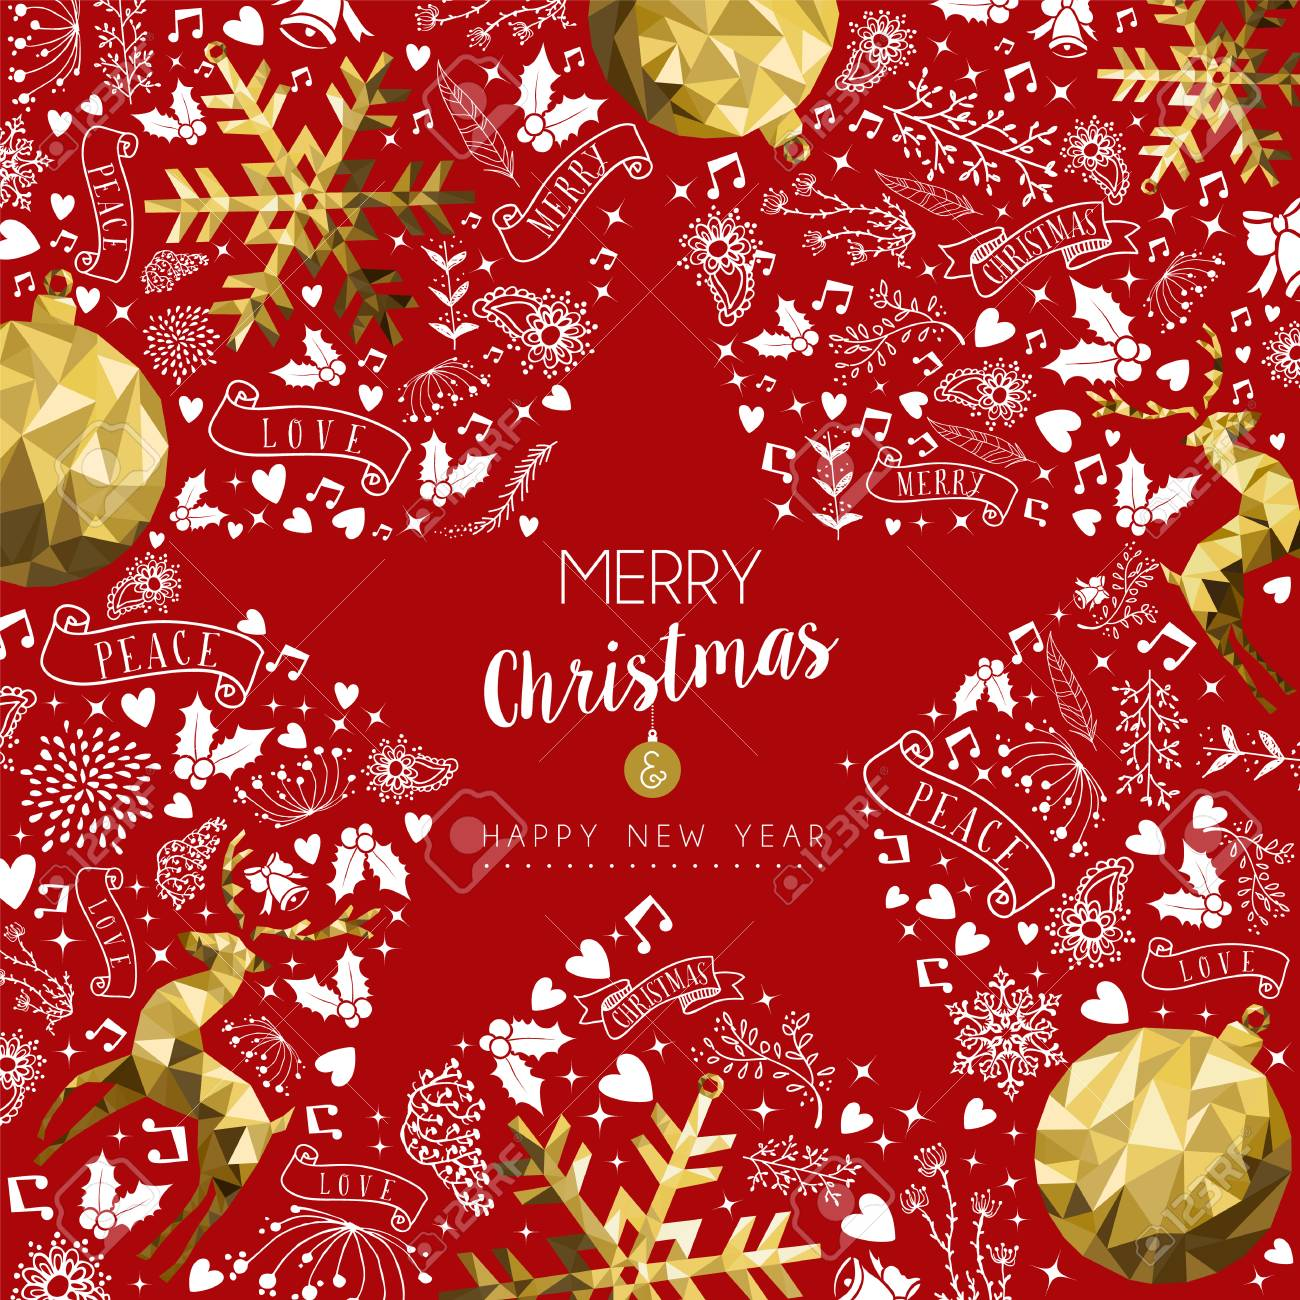 Merry Christmas Greeting Card With New Year Text Quote And Gold